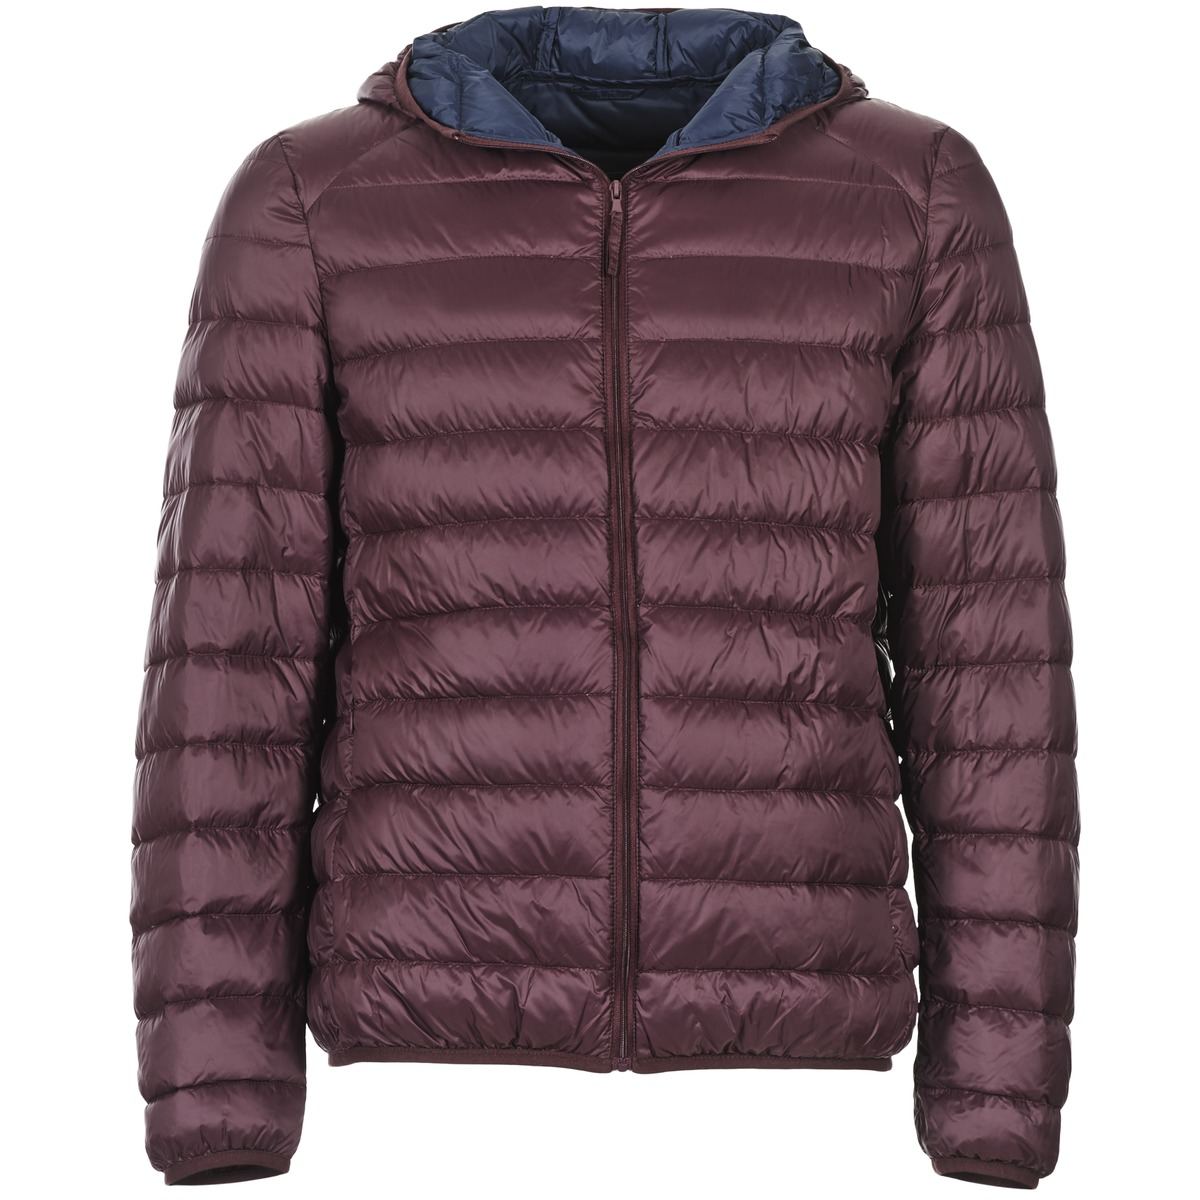 Benetton FOULI Bordeaux / Marine